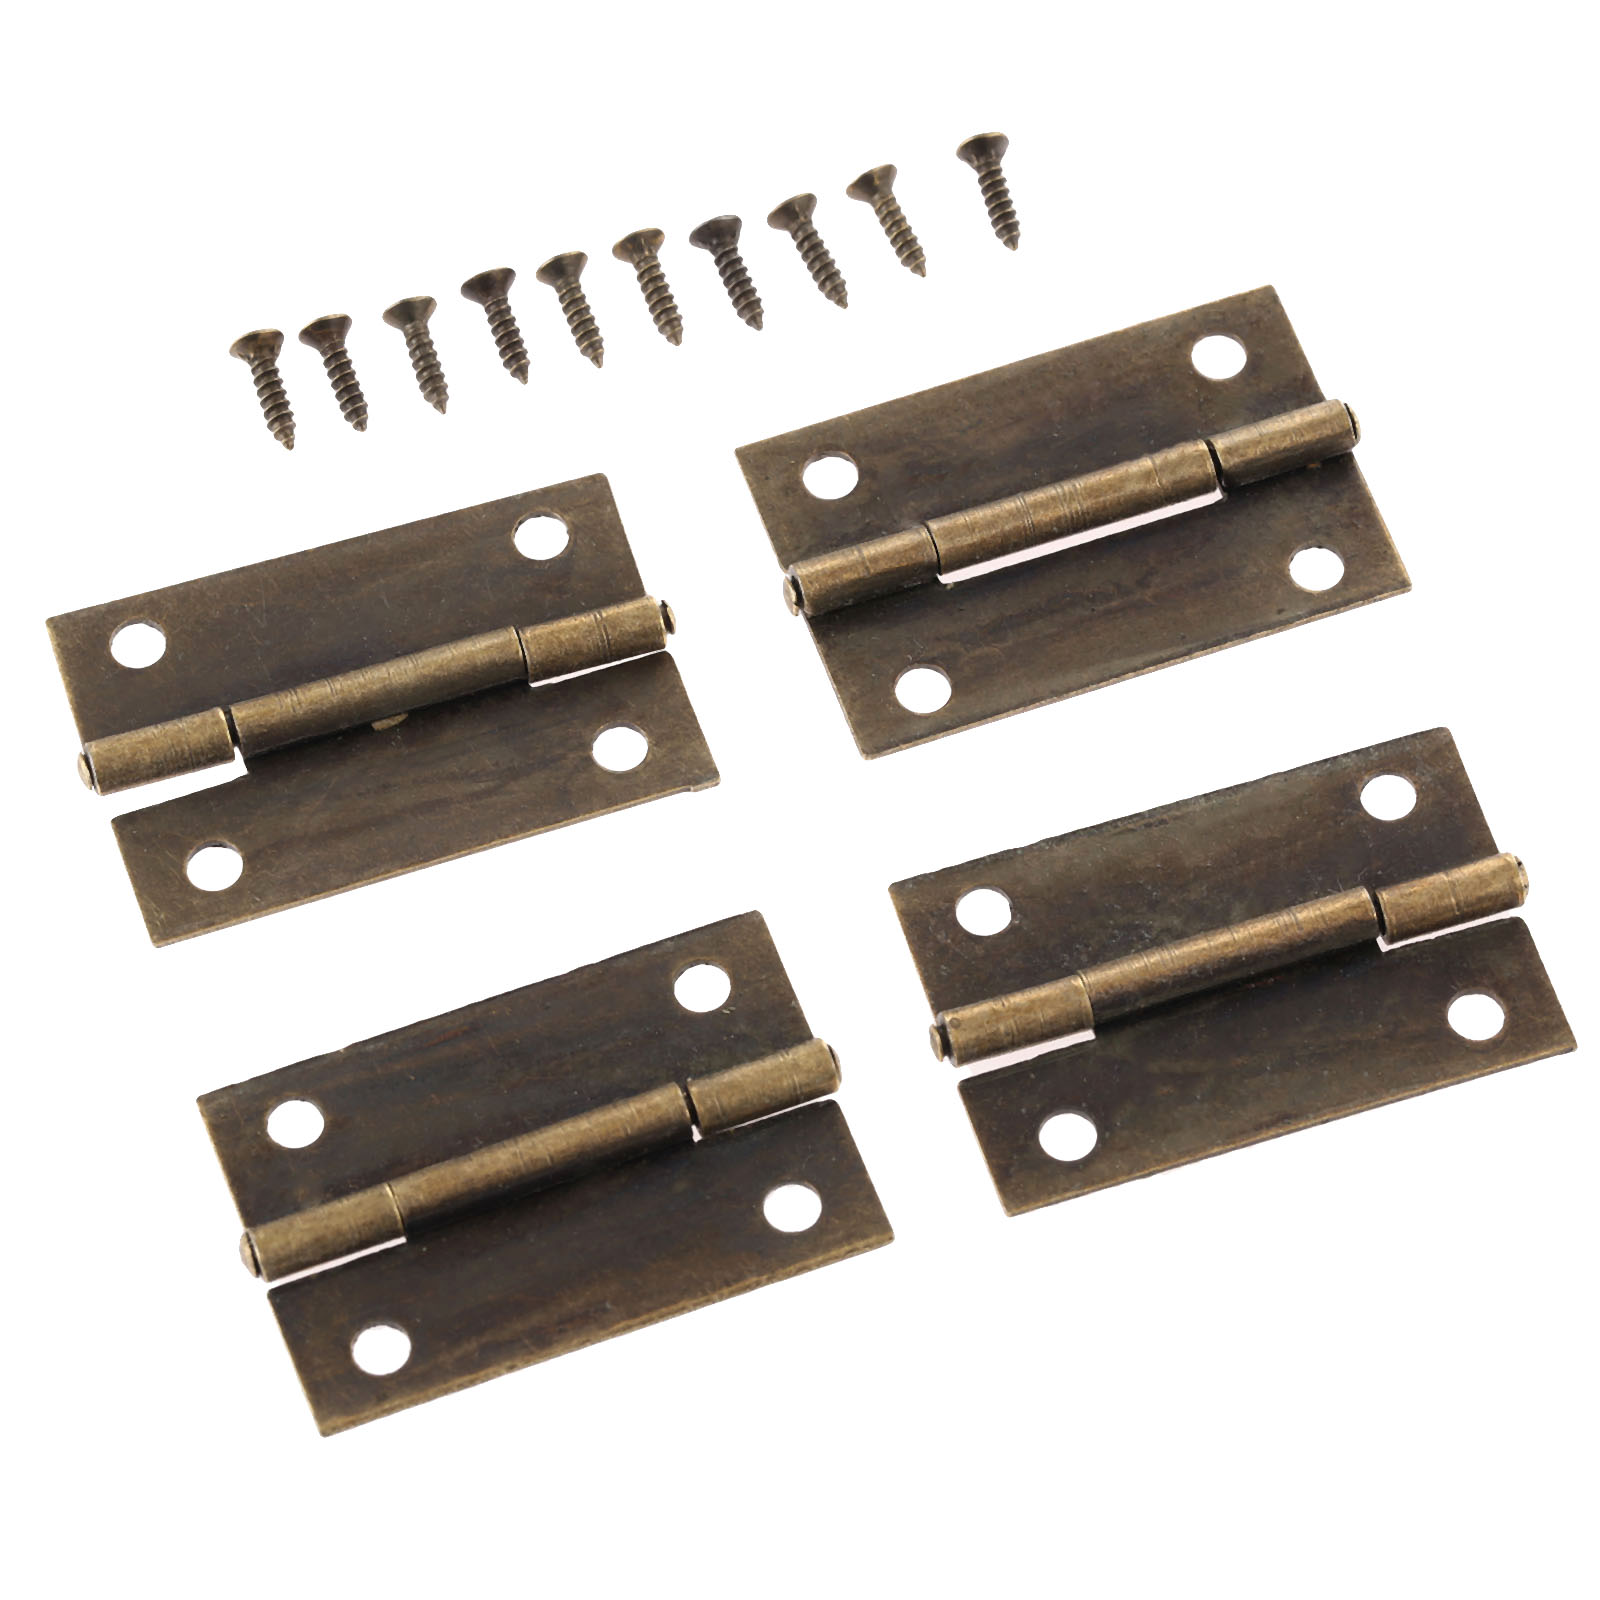 4Pcs Antique Bronze Furniture Hinges Jewelry Box Cabinet Drawer Door Butt Hinge Decorative Hinges for Furniture Hardware 38*25mm 10pcs kak antique bronze hinges cabinet door drawer decorative mini hinge for jewelry storage wooden box furniture h